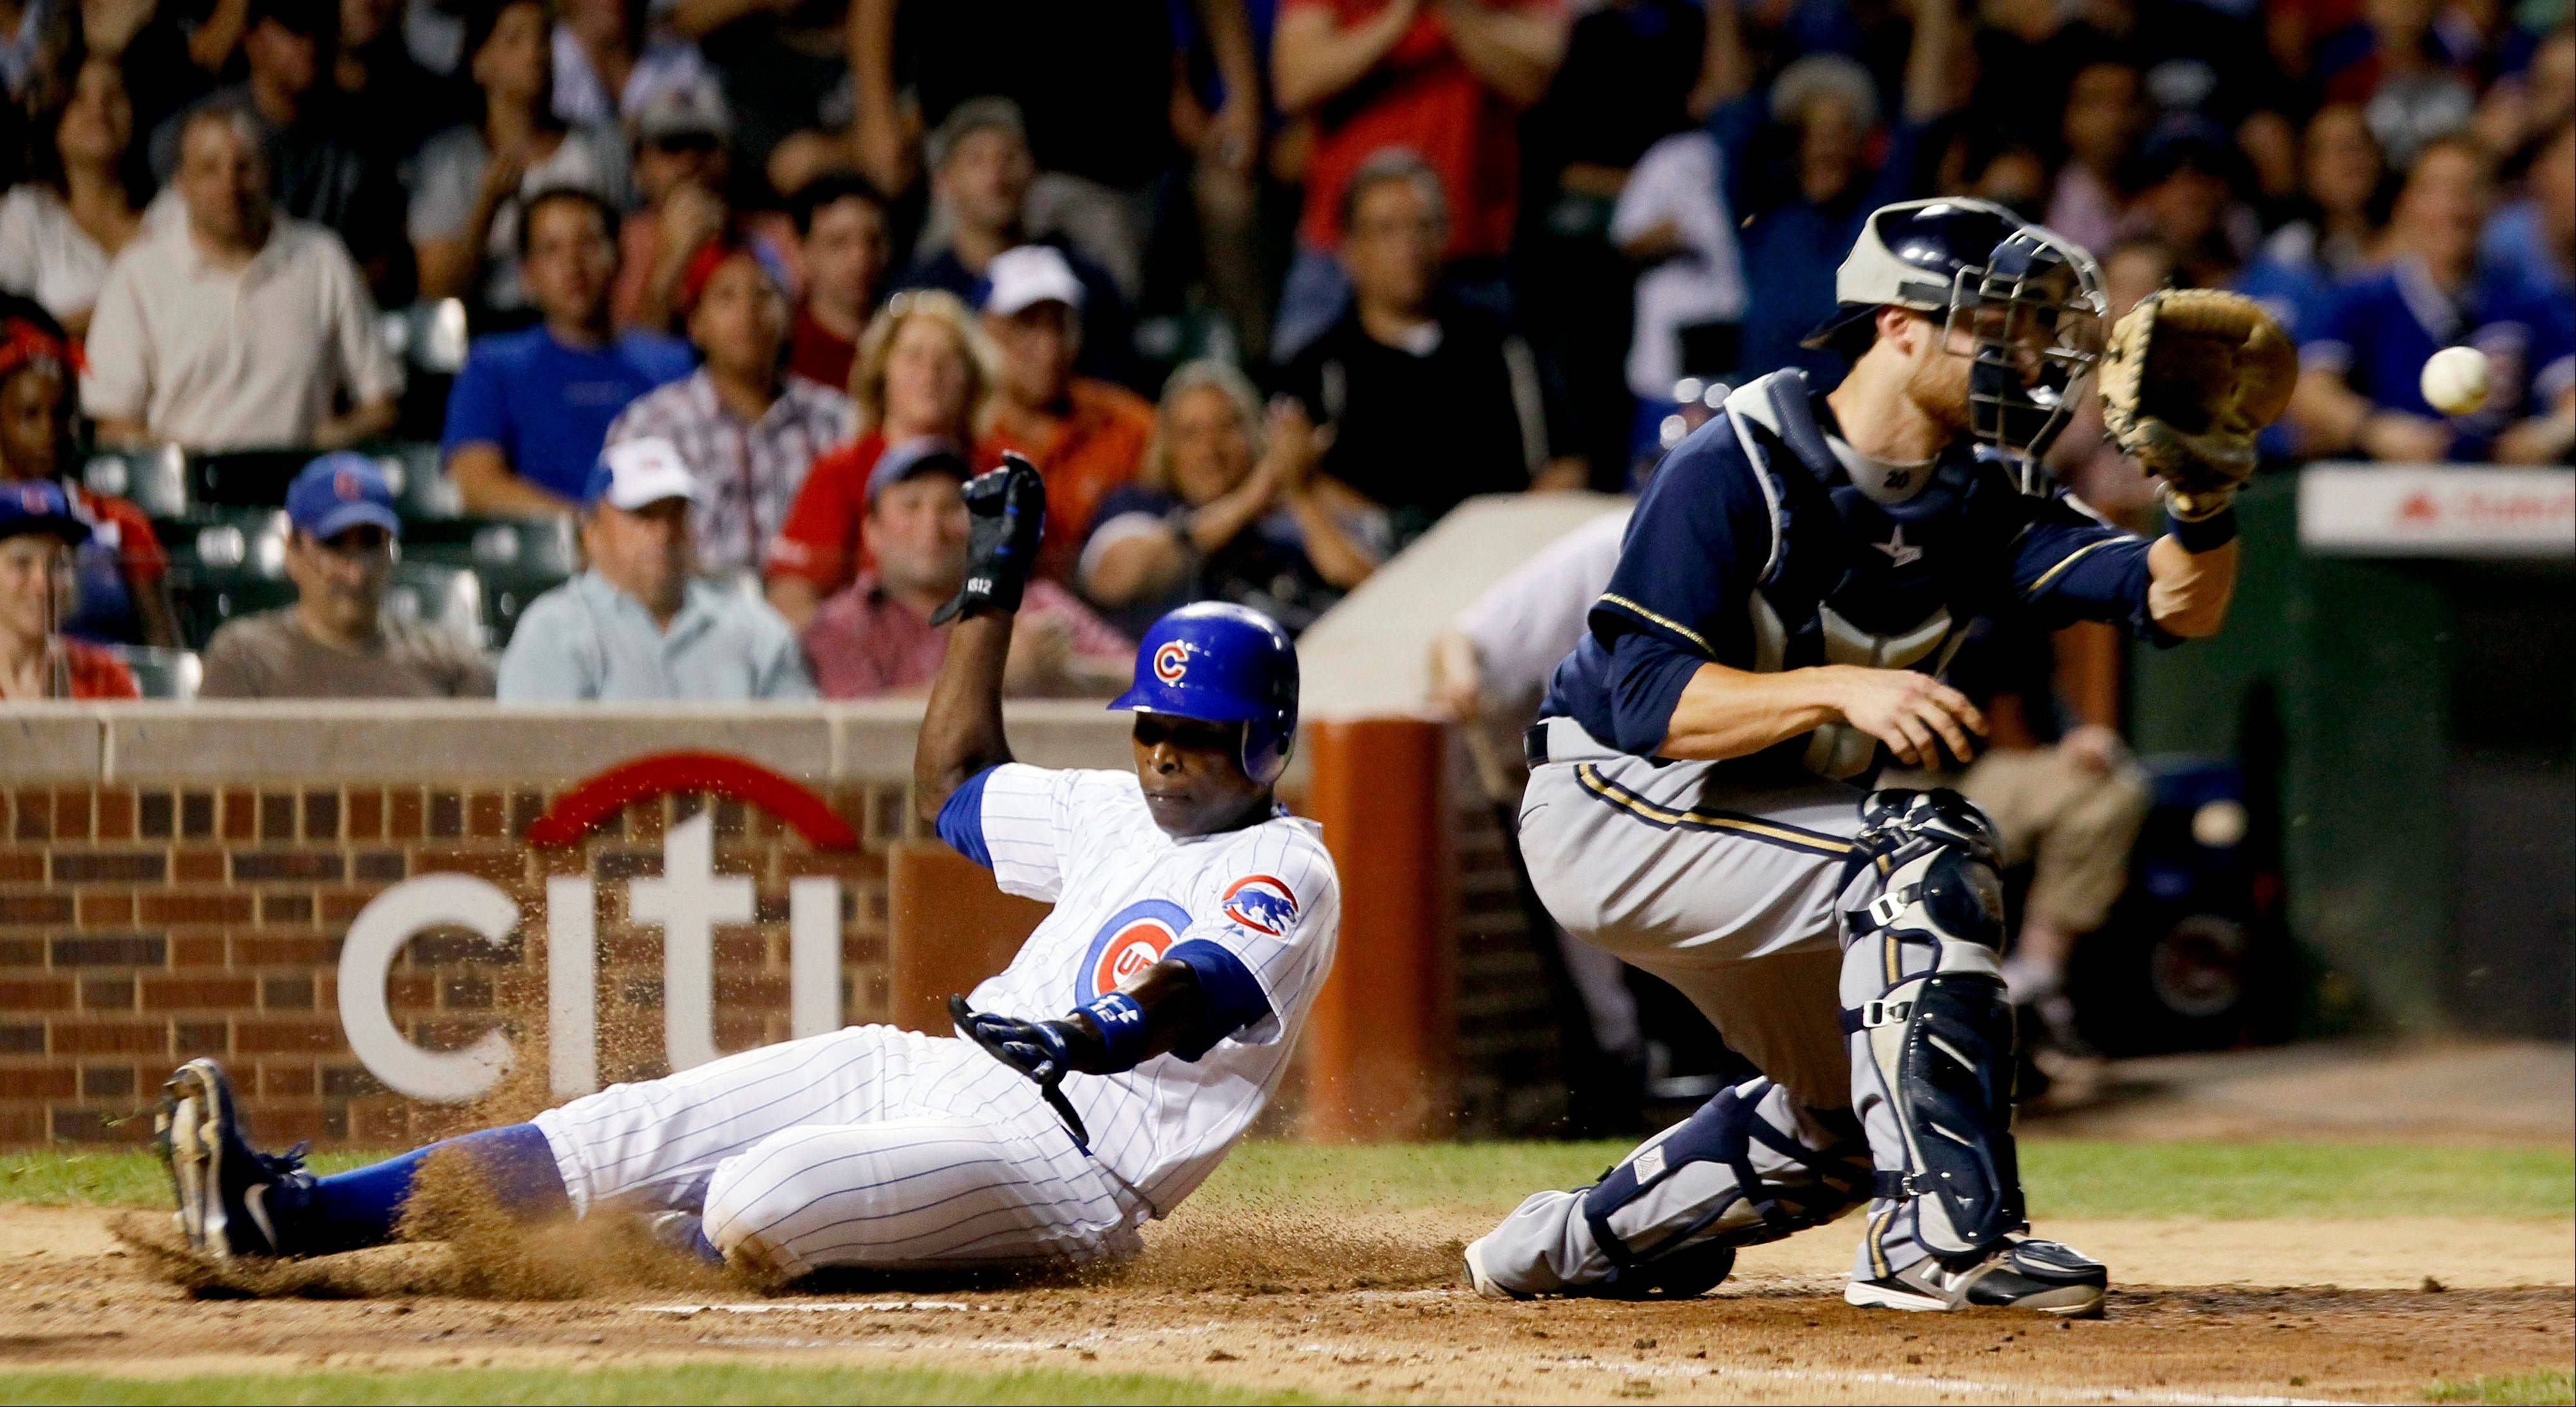 Cubs outfielder Alfonso Soriano, left, scores past Milwaukee Brewers catcher Jonathan Lucroy off a single by Starlin Castro during the third inning Monday at Wrigley Field.